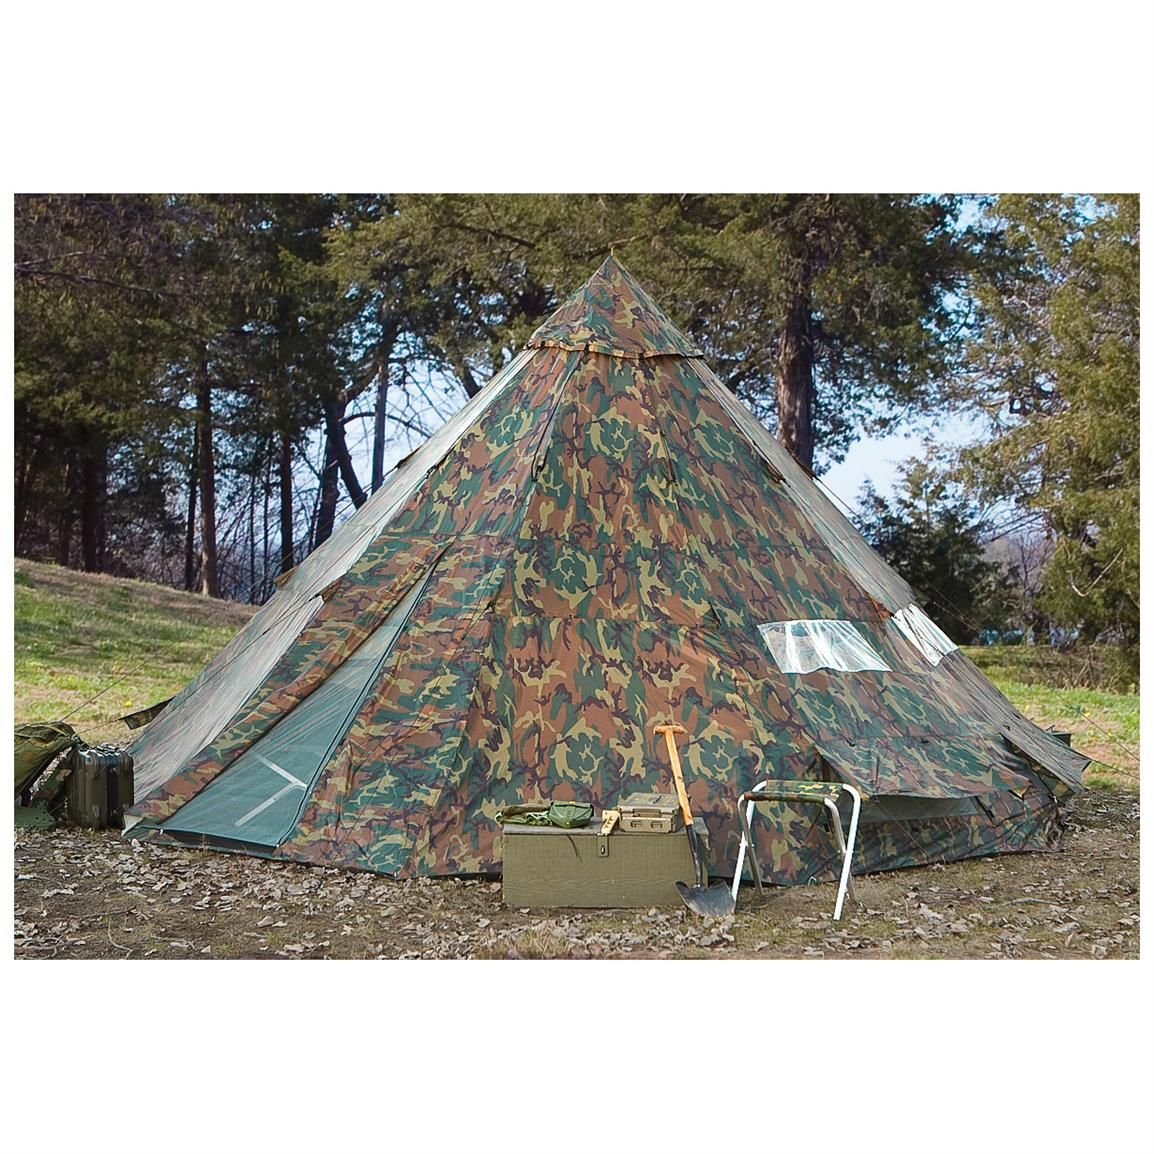 on sale d8412 01559 HQ ISSUE 10x10 foot Teepee Tent, Woodland Camo | Preppie ...